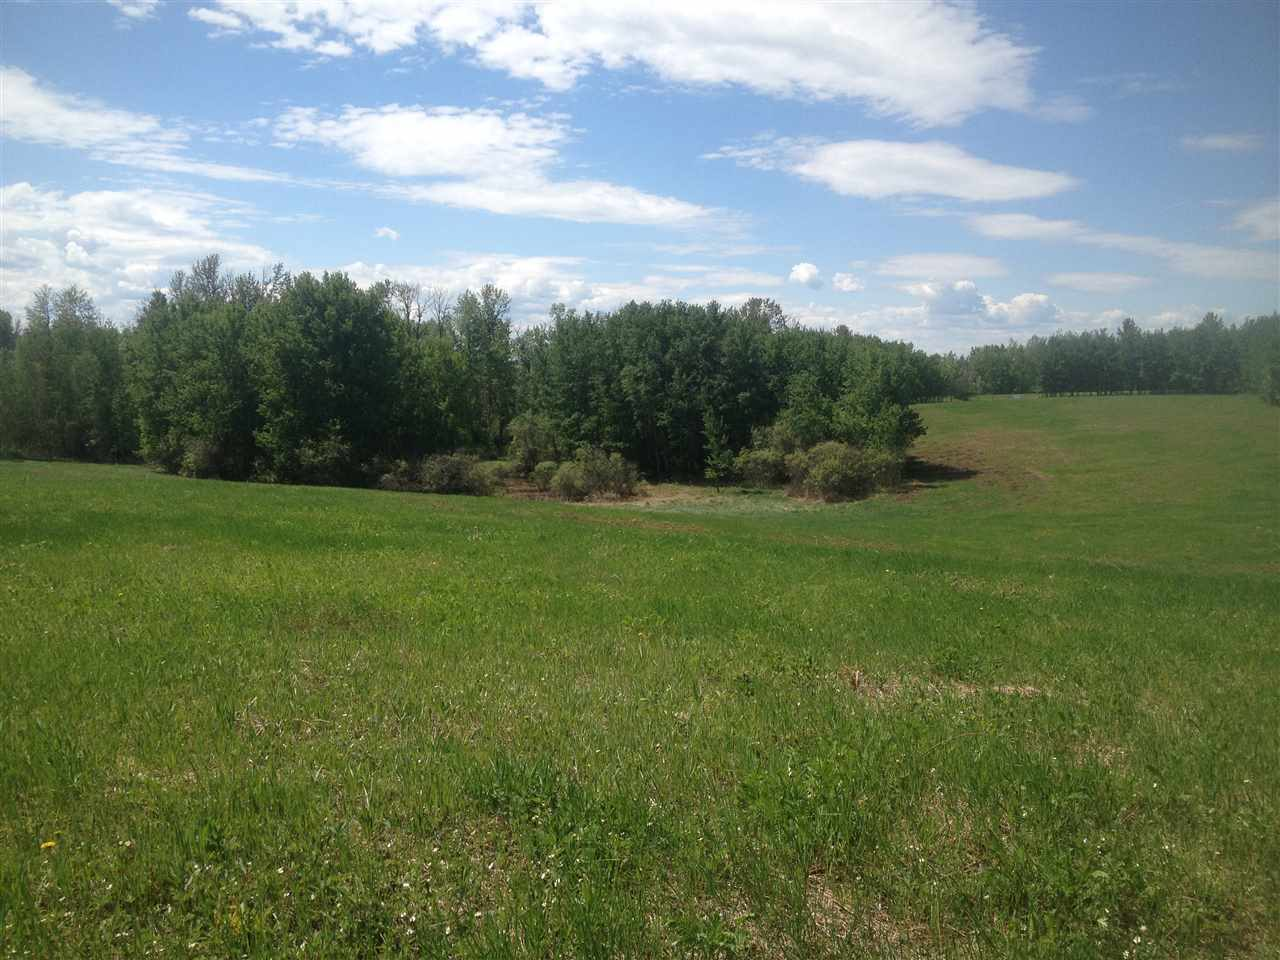 Photo 7: 52502 Range Road 22A: Rural Parkland County Rural Land/Vacant Lot for sale : MLS(r) # E4069524